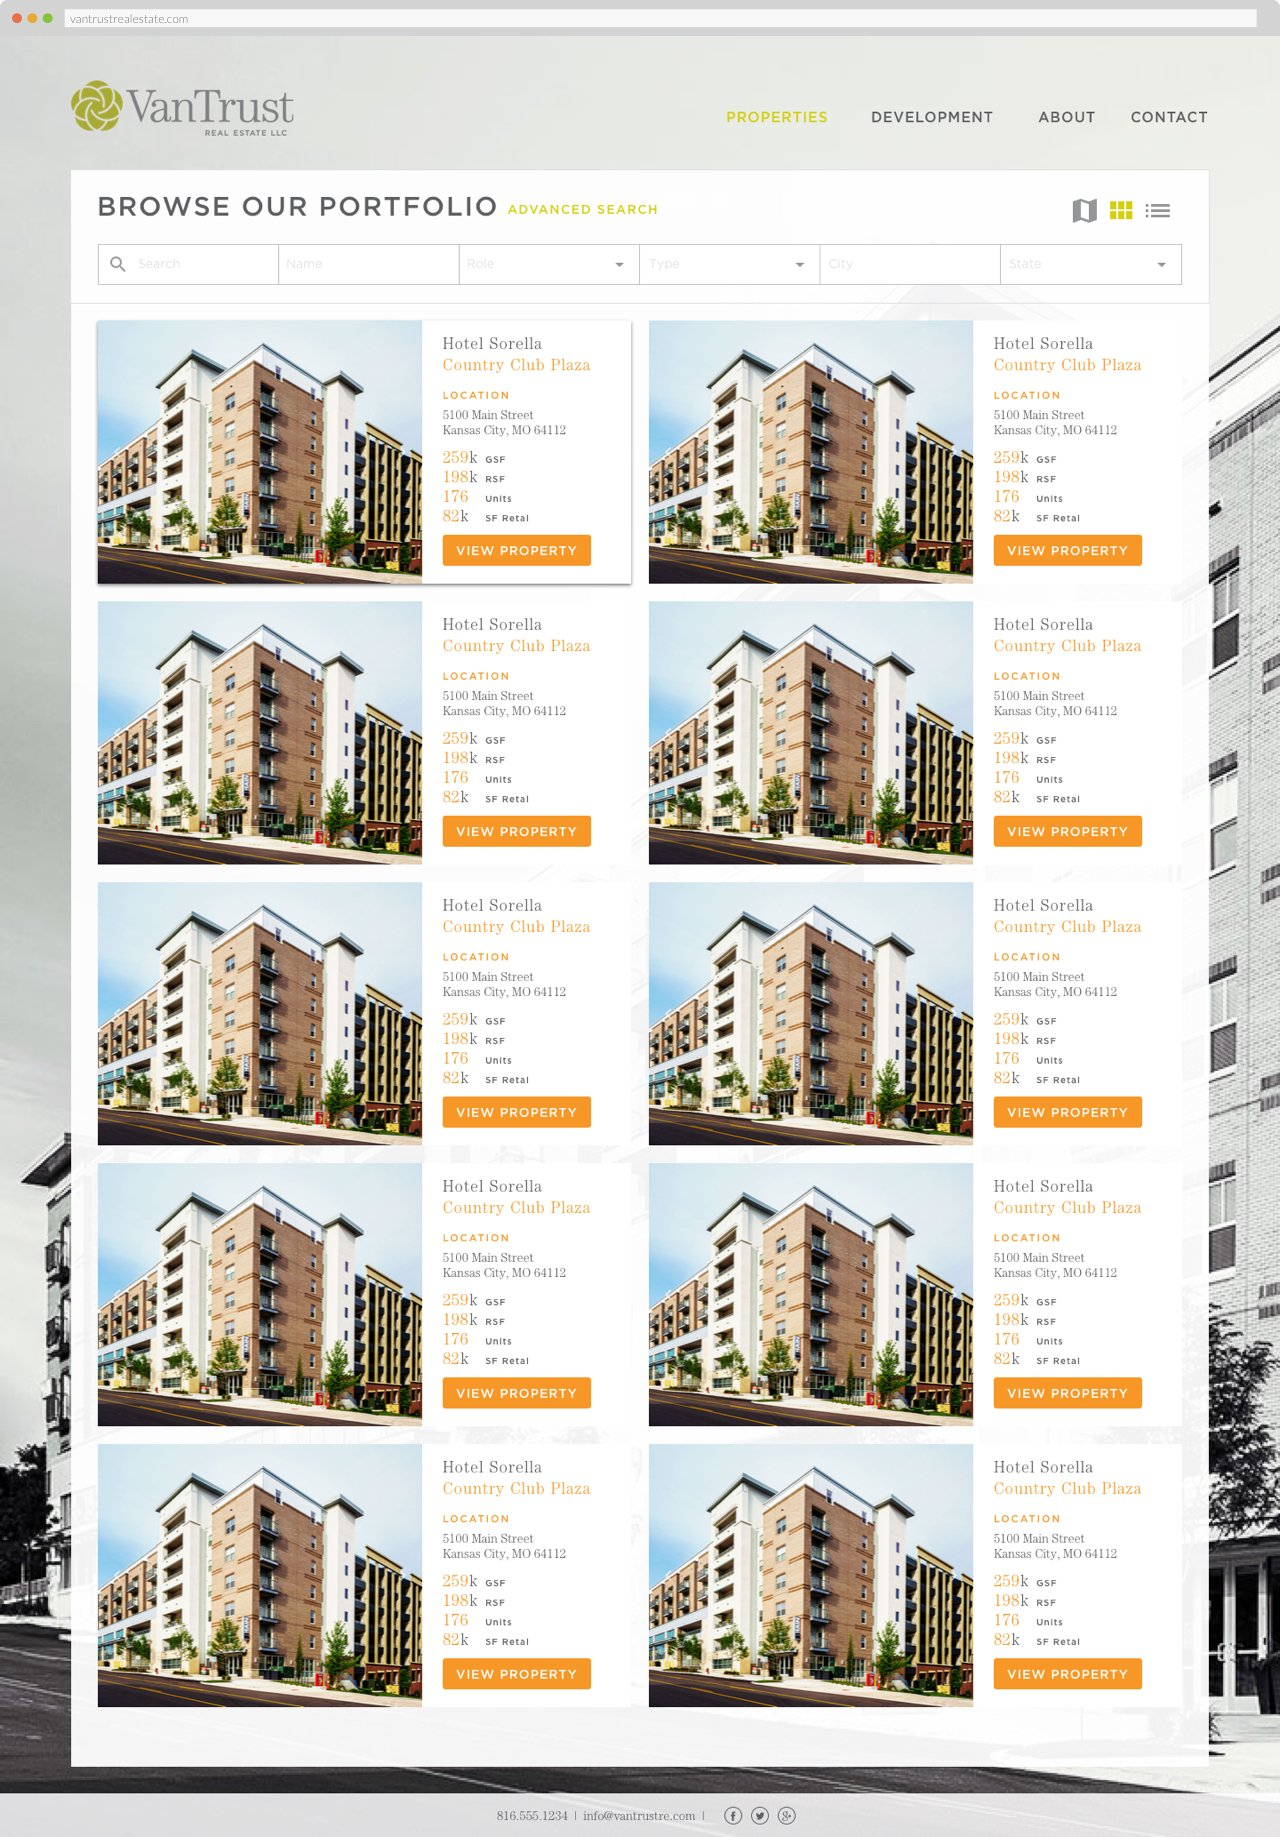 VanTrust Real Estate - Property Search, Grid View